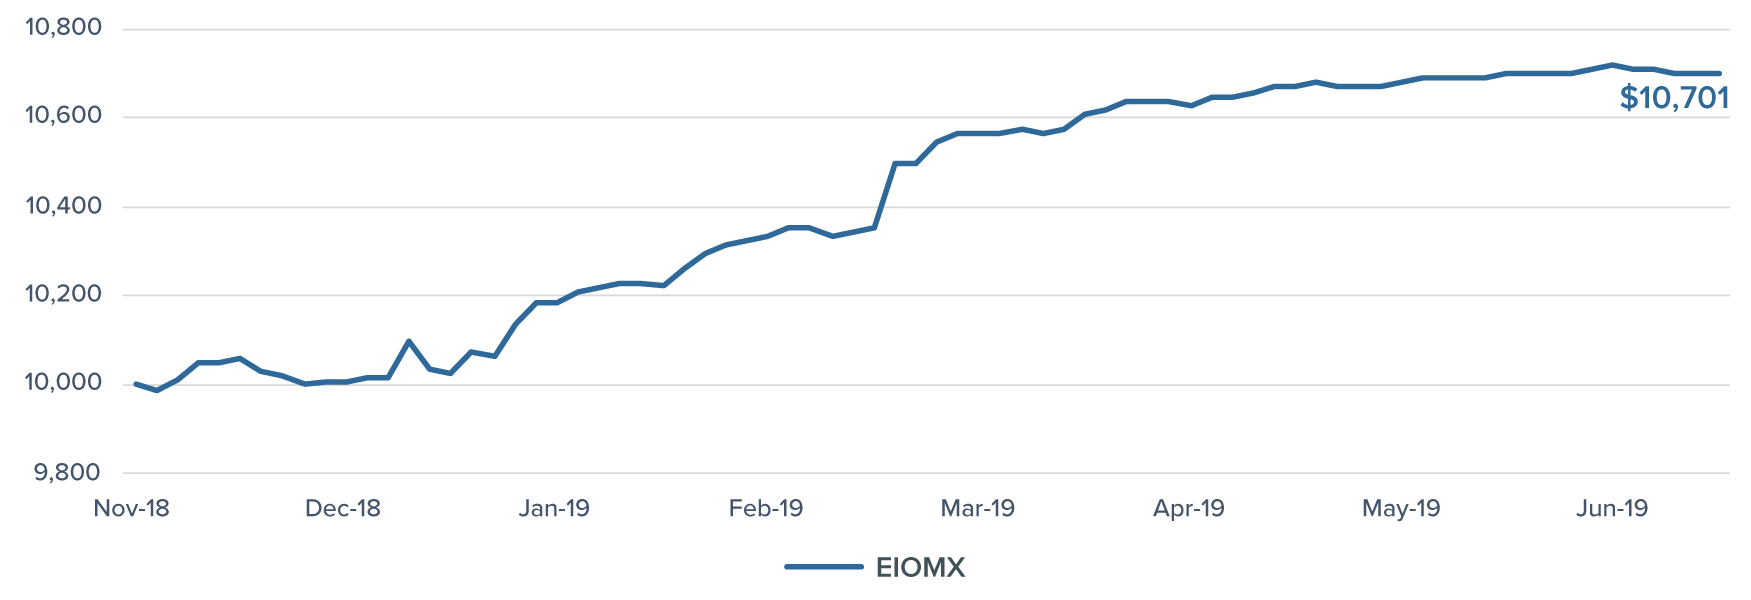 growthof10K_EIOMX_July